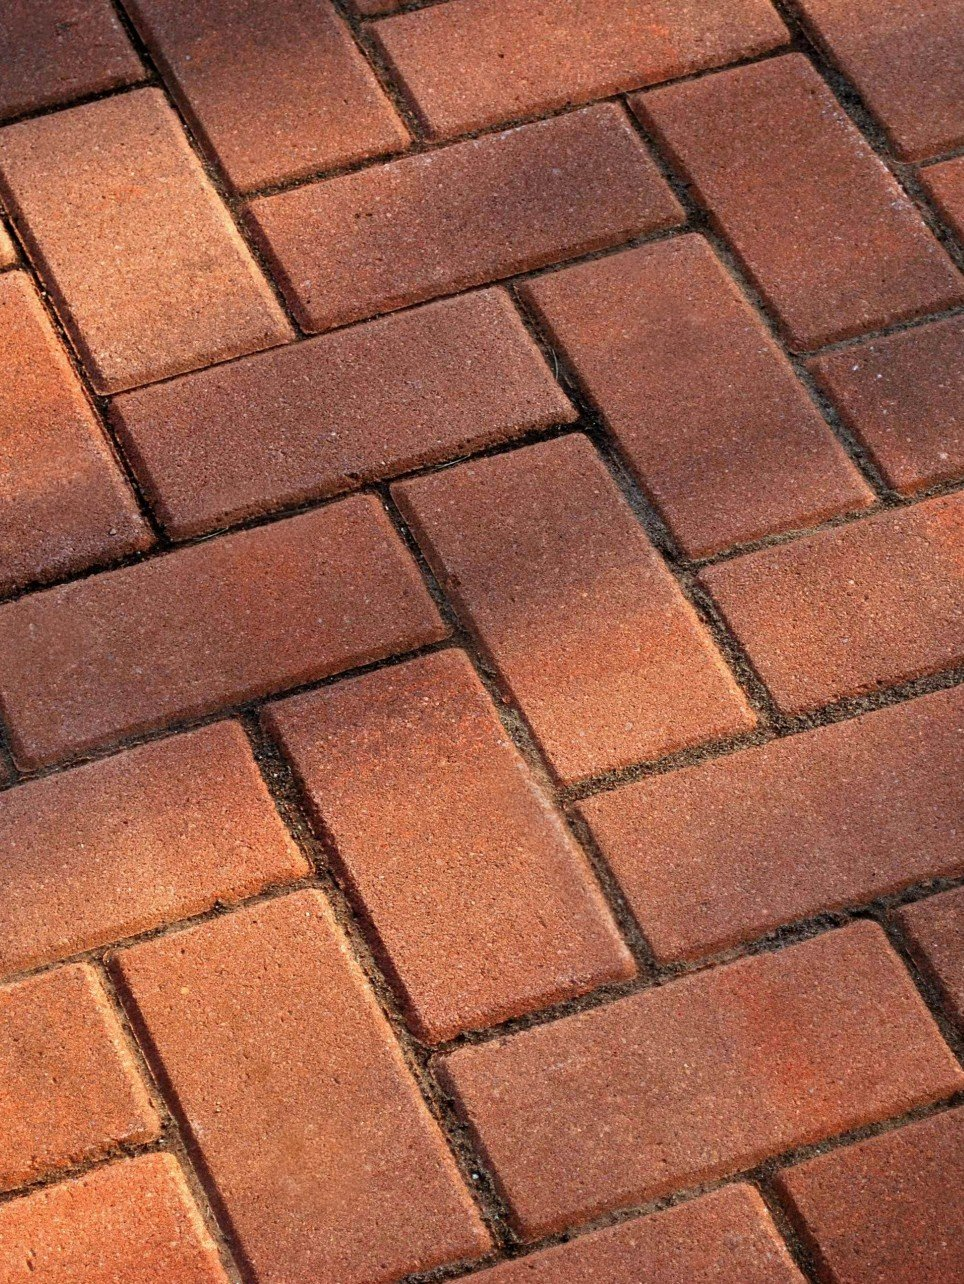 Block Paving Companies Bournbrook